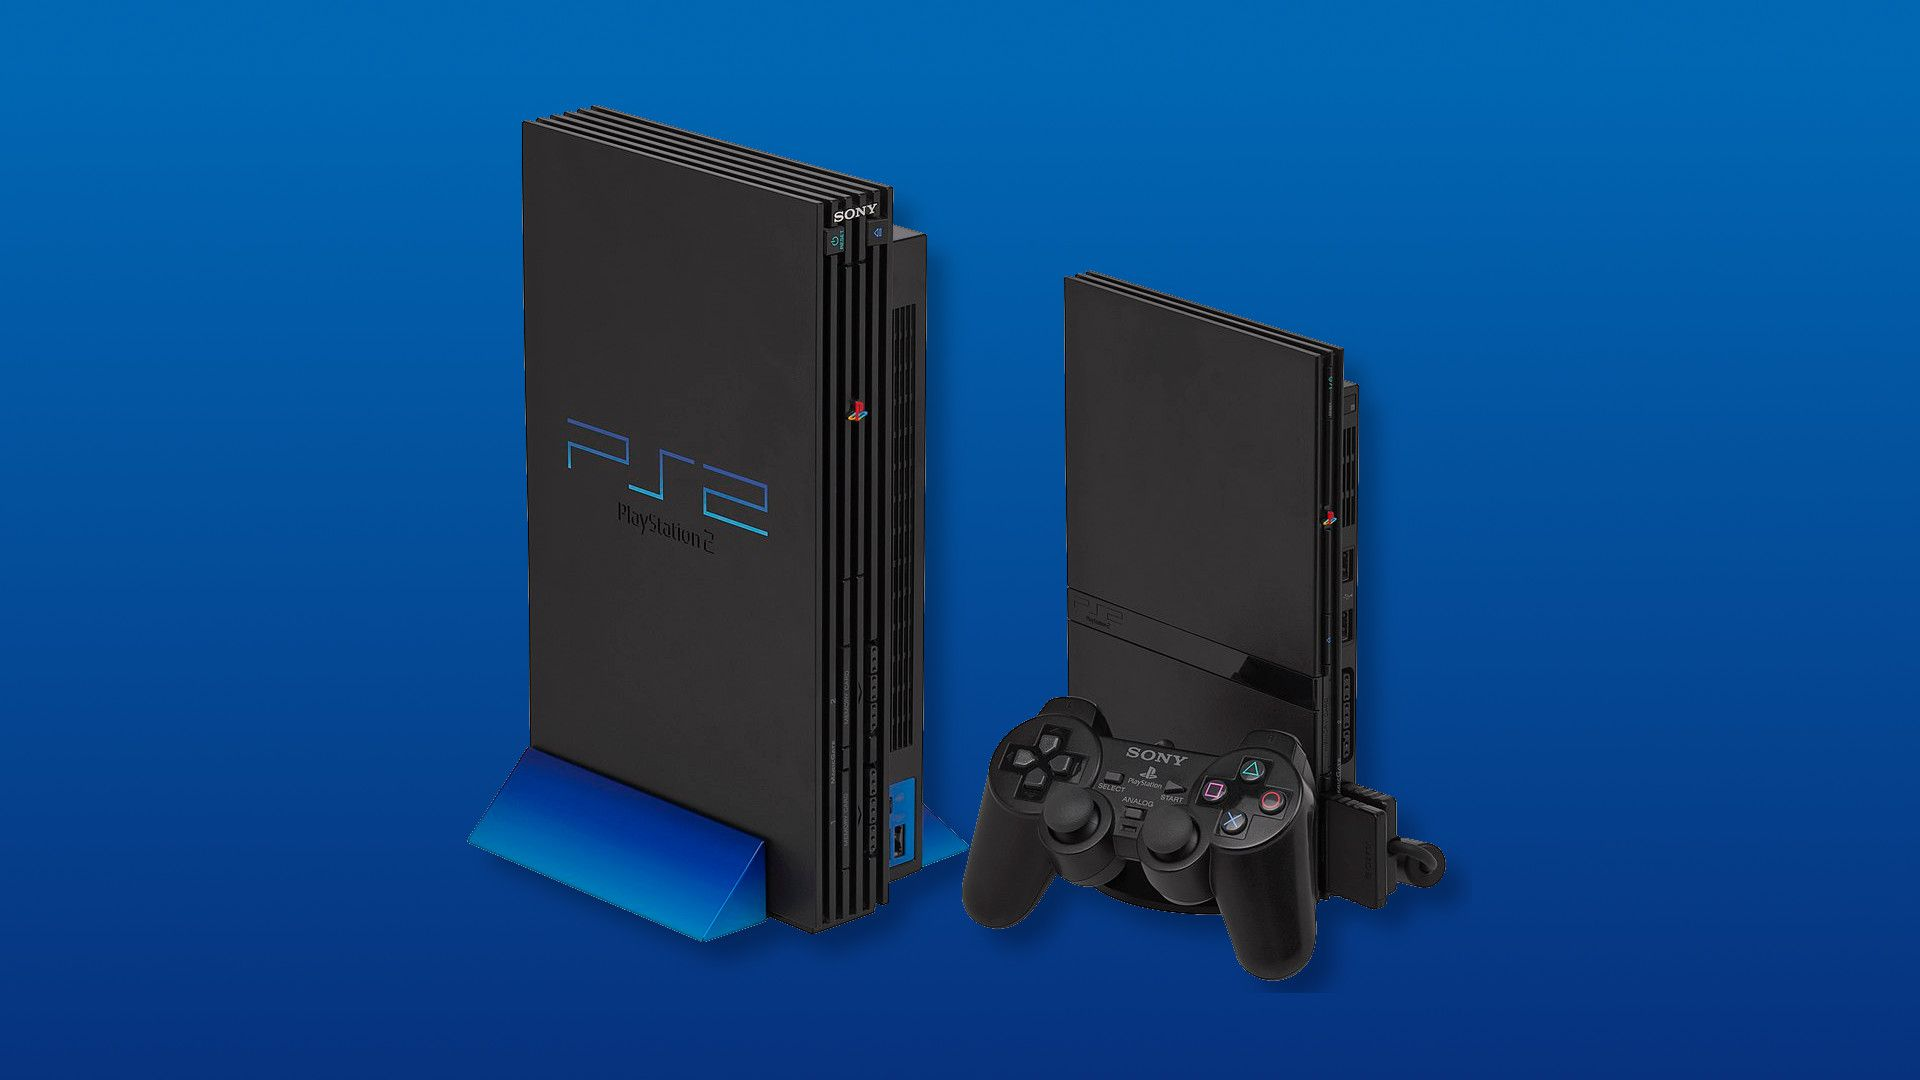 What Is PlayStation 2?